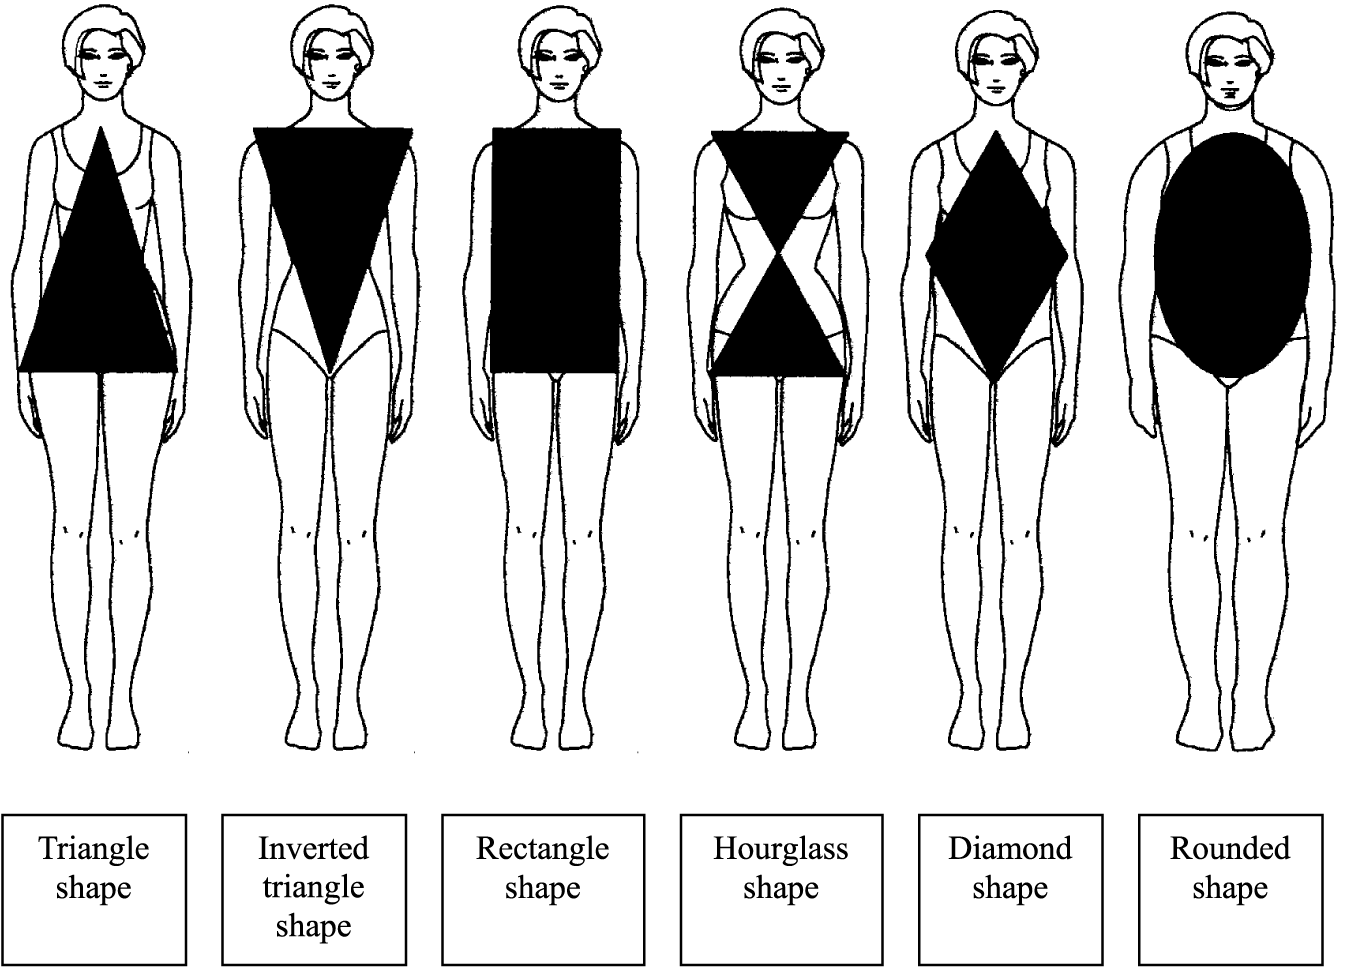 Learn Types Of Women Shapes For Dress That Make A Fashionable ...